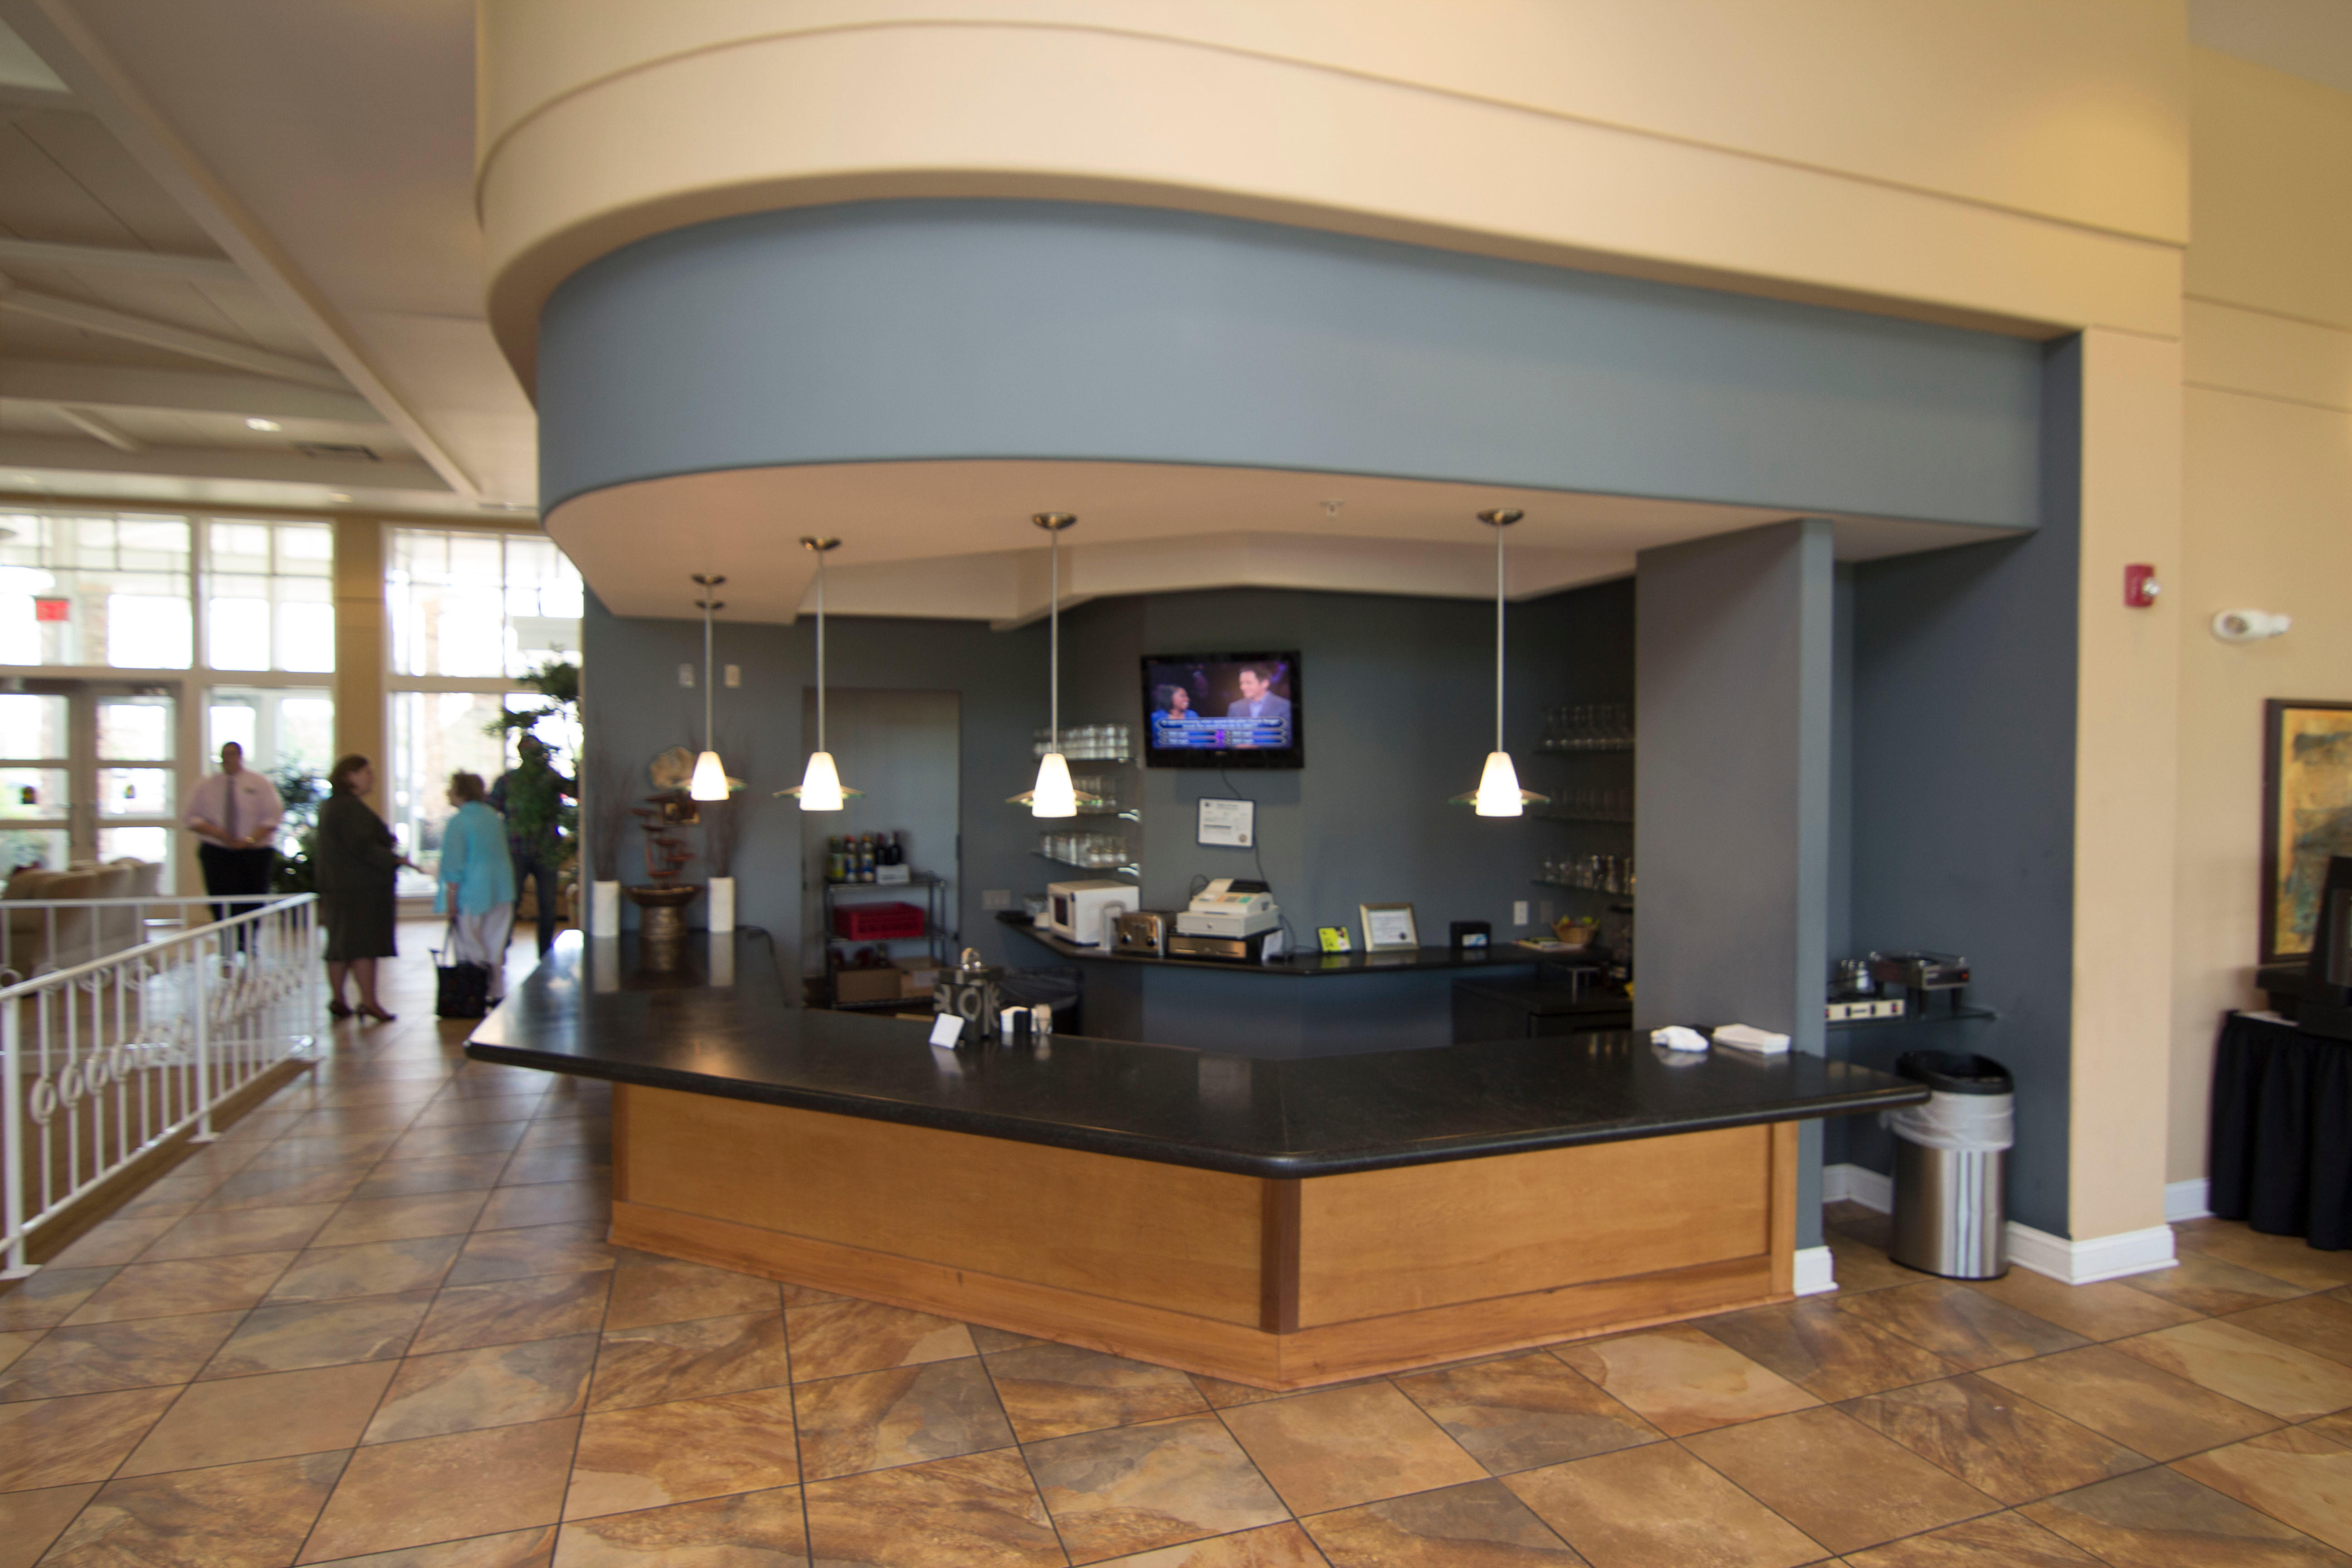 The Fountains Retirement Community image 3